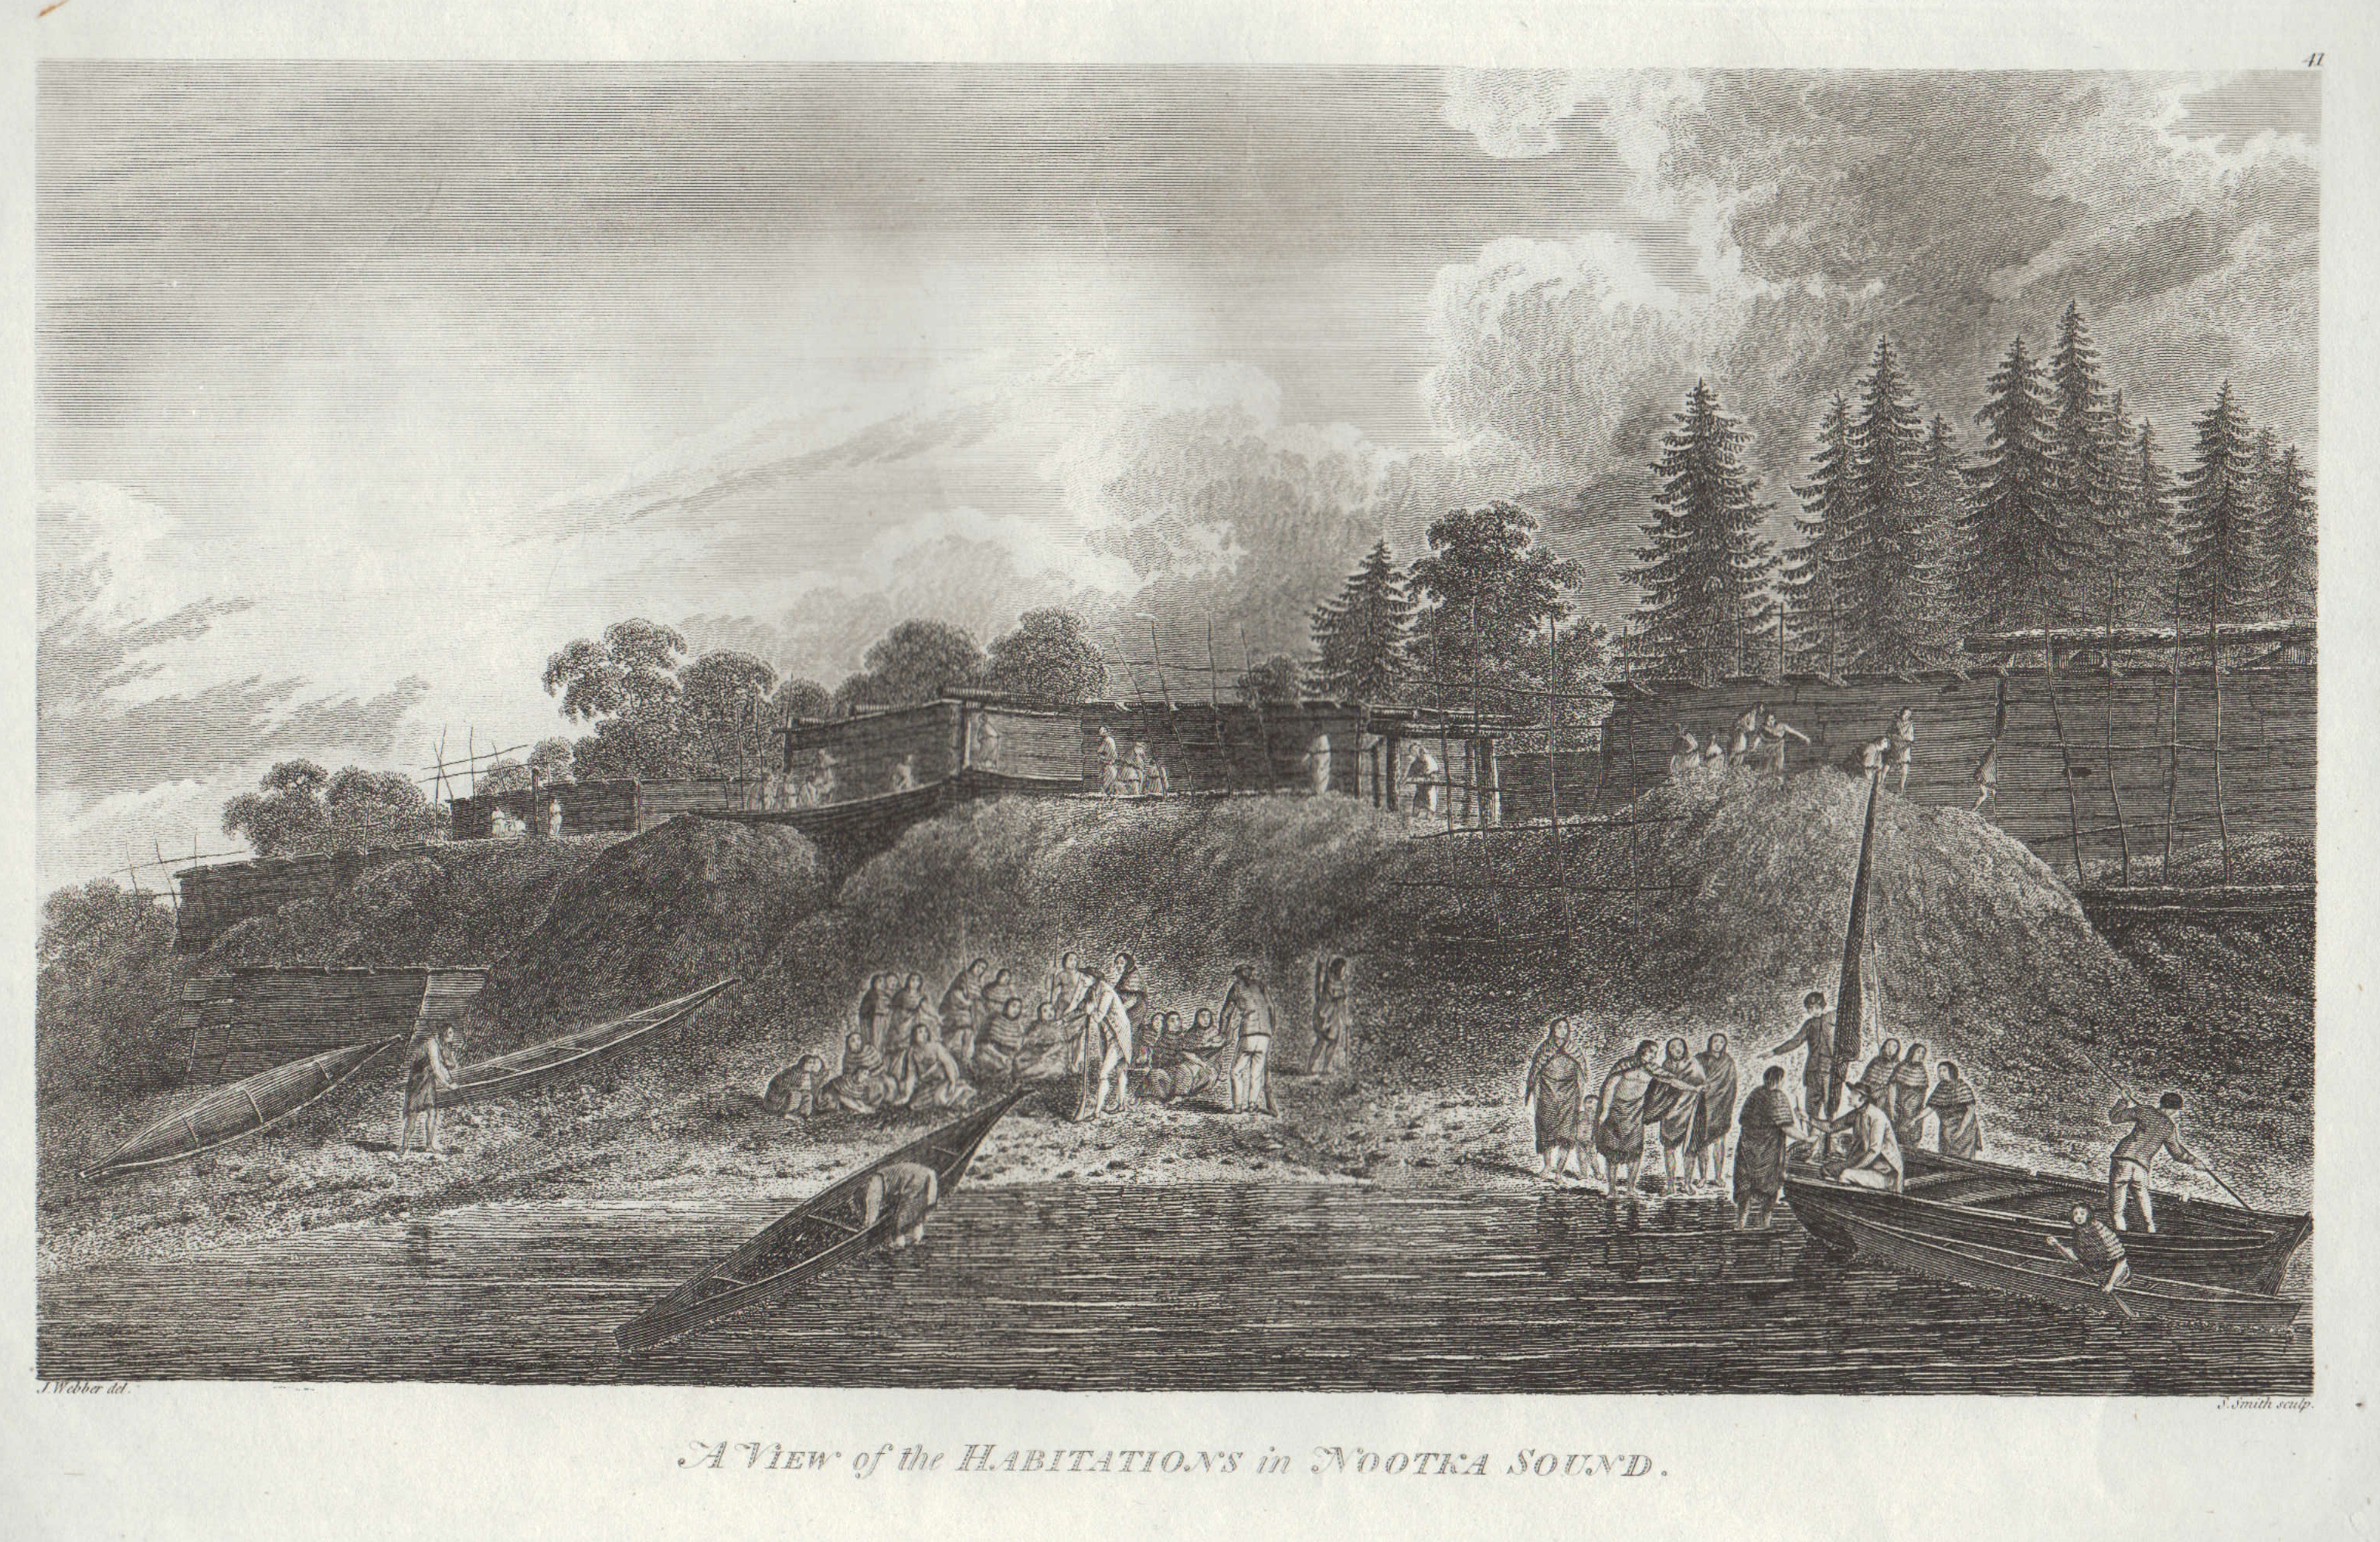 Engraving after James Weber, Habitations in Nootka Sound, published 1784